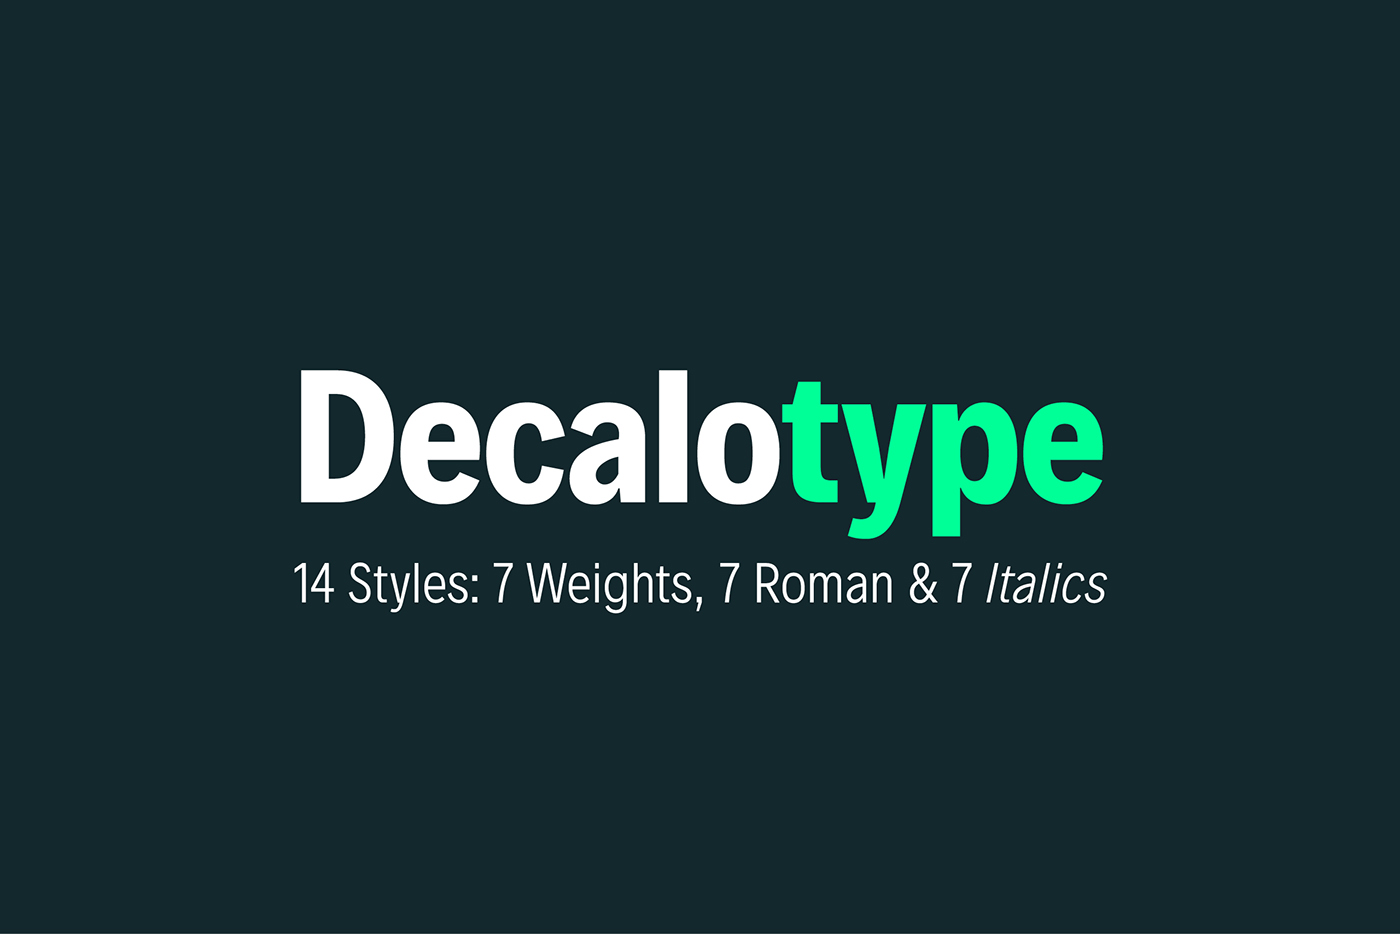 Free-Decalotype-Typeface